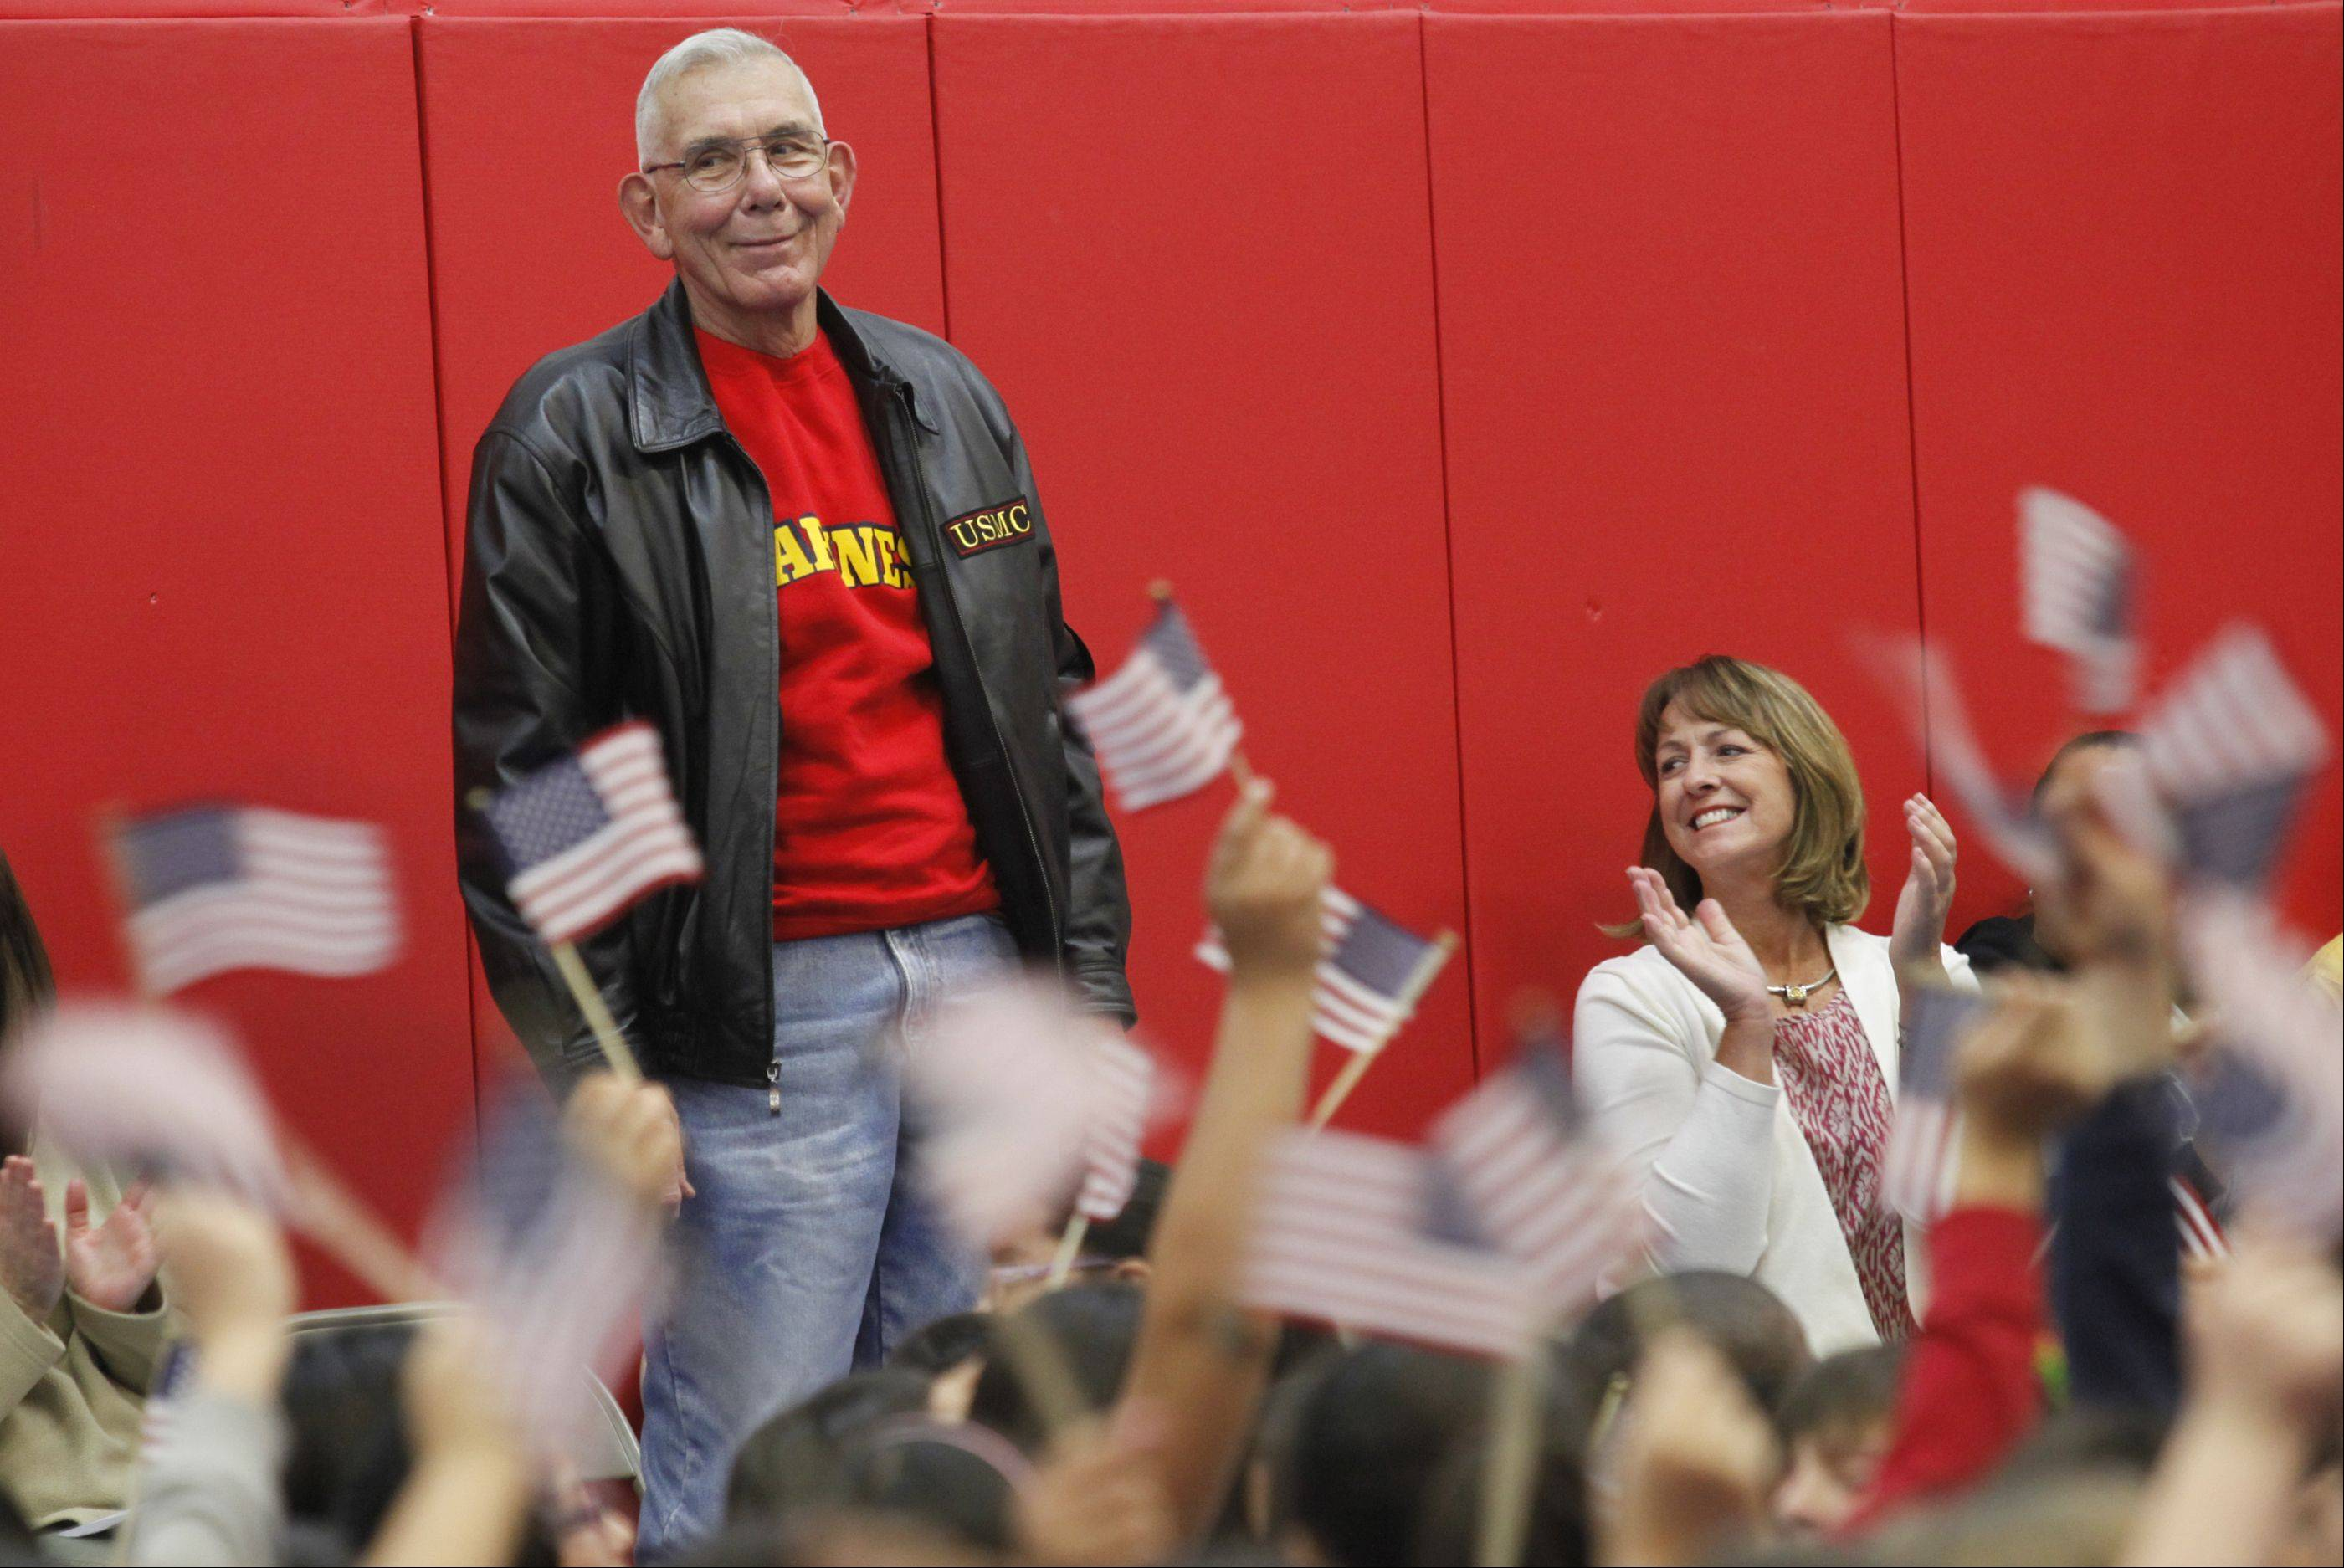 Marine Corps veteran Alfred Laseke stands to be recognized during the Veterans Day ceremony Monday at Parkview Elementary in Carpentersville. Laseke, who lives in Rockford, visited Parkview since his grandson, Tommy Schnackel, is a third-grader at the school.